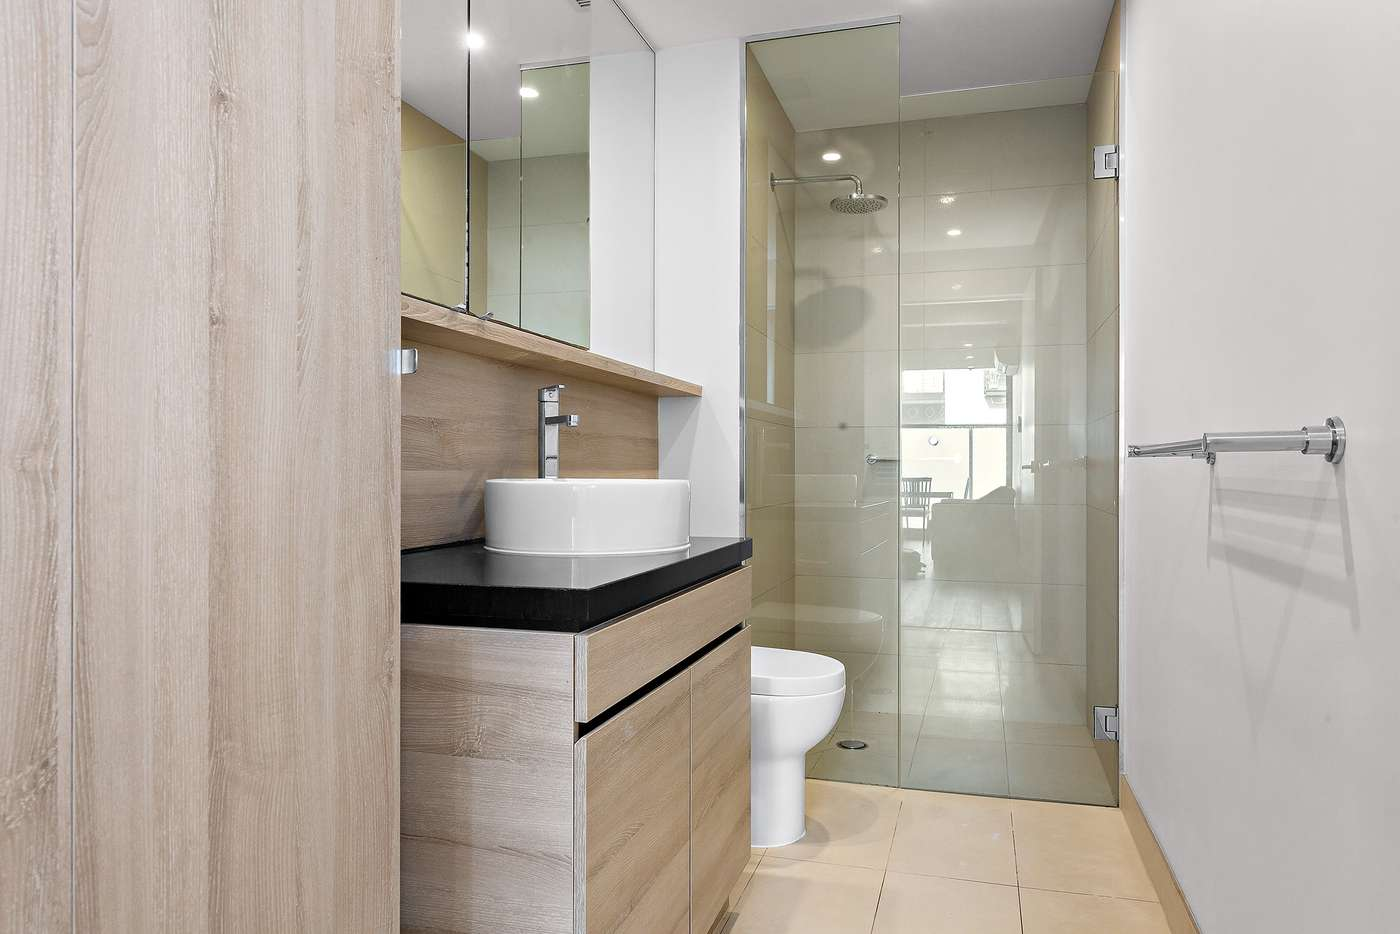 Sixth view of Homely apartment listing, 303/19-25 Nott Street, Port Melbourne VIC 3207